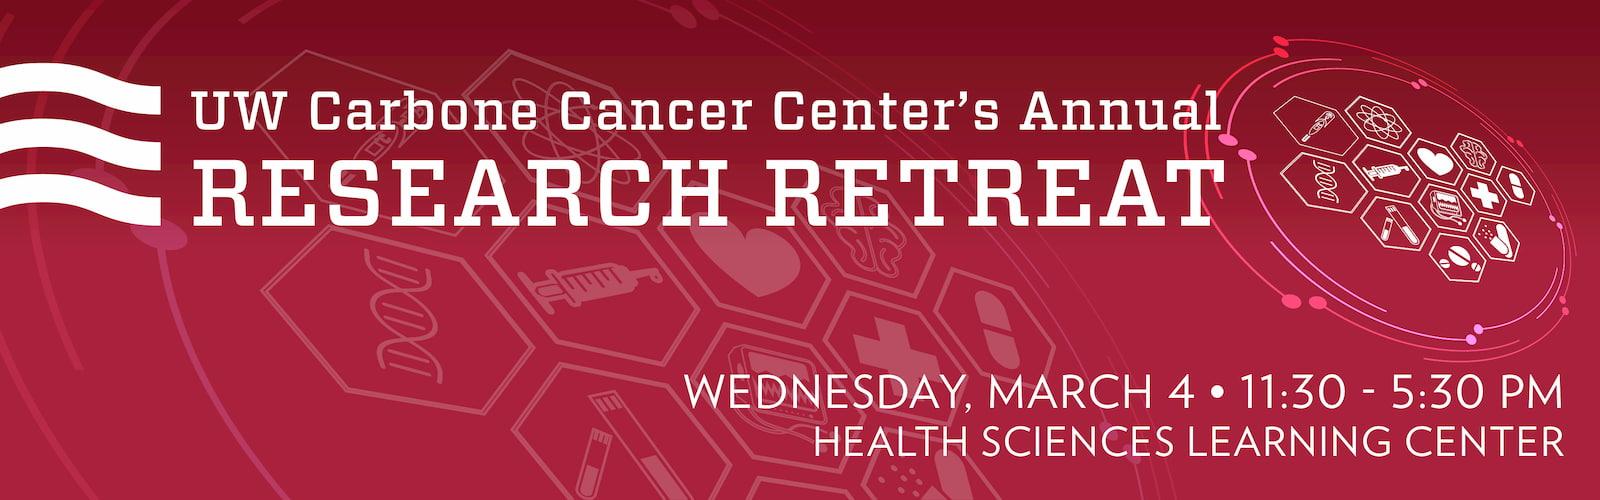 Banner for the UW Carbone Cancer Center's Annual retreat March 4th 11:30-5:30